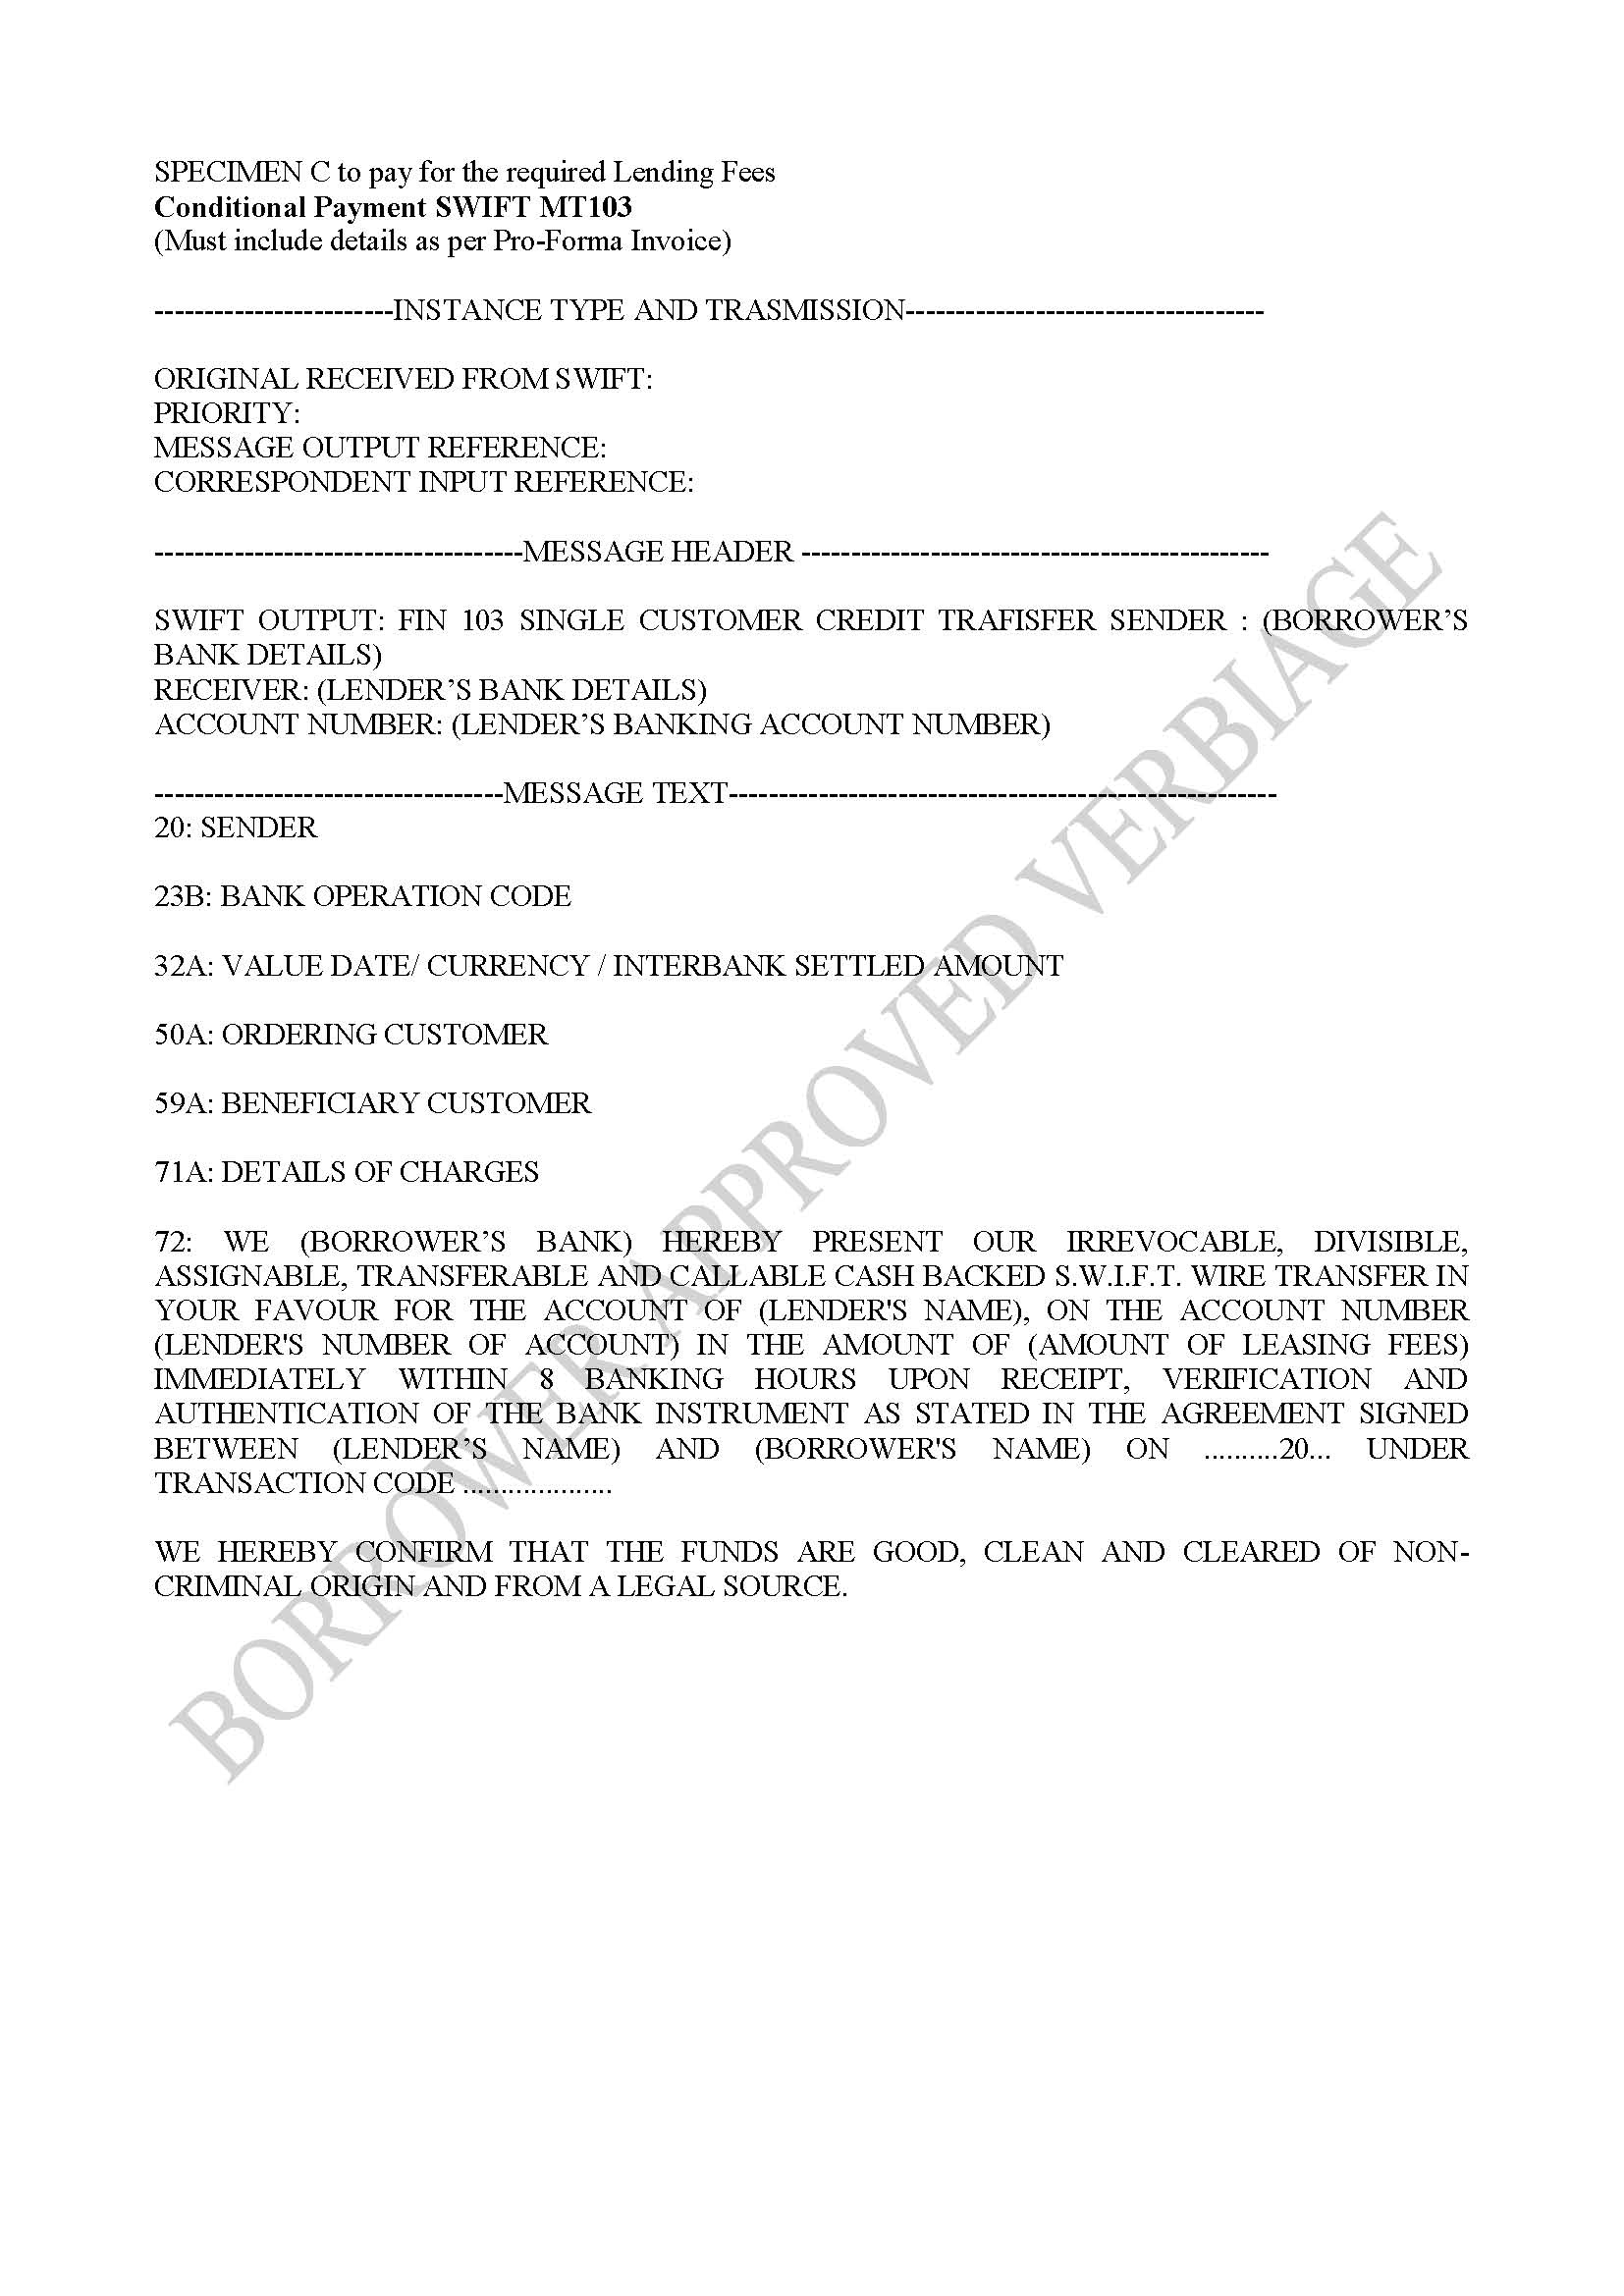 BUSINESS SUPPORT CONTRACT (ALL SPECIMEN)_Seite_3